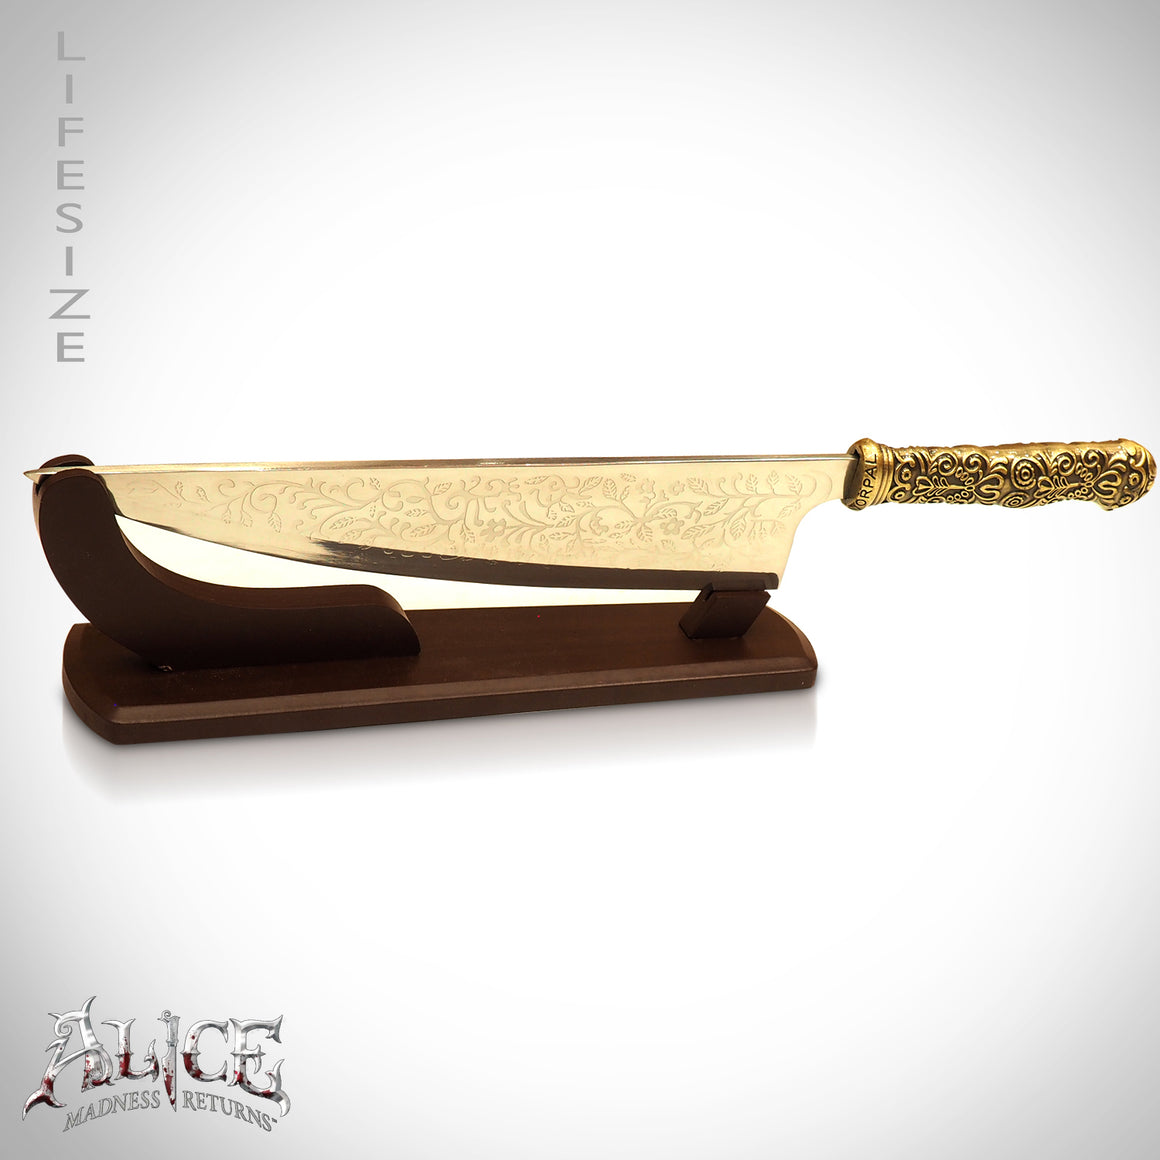 Alice madness returns Vorpal blade on stand